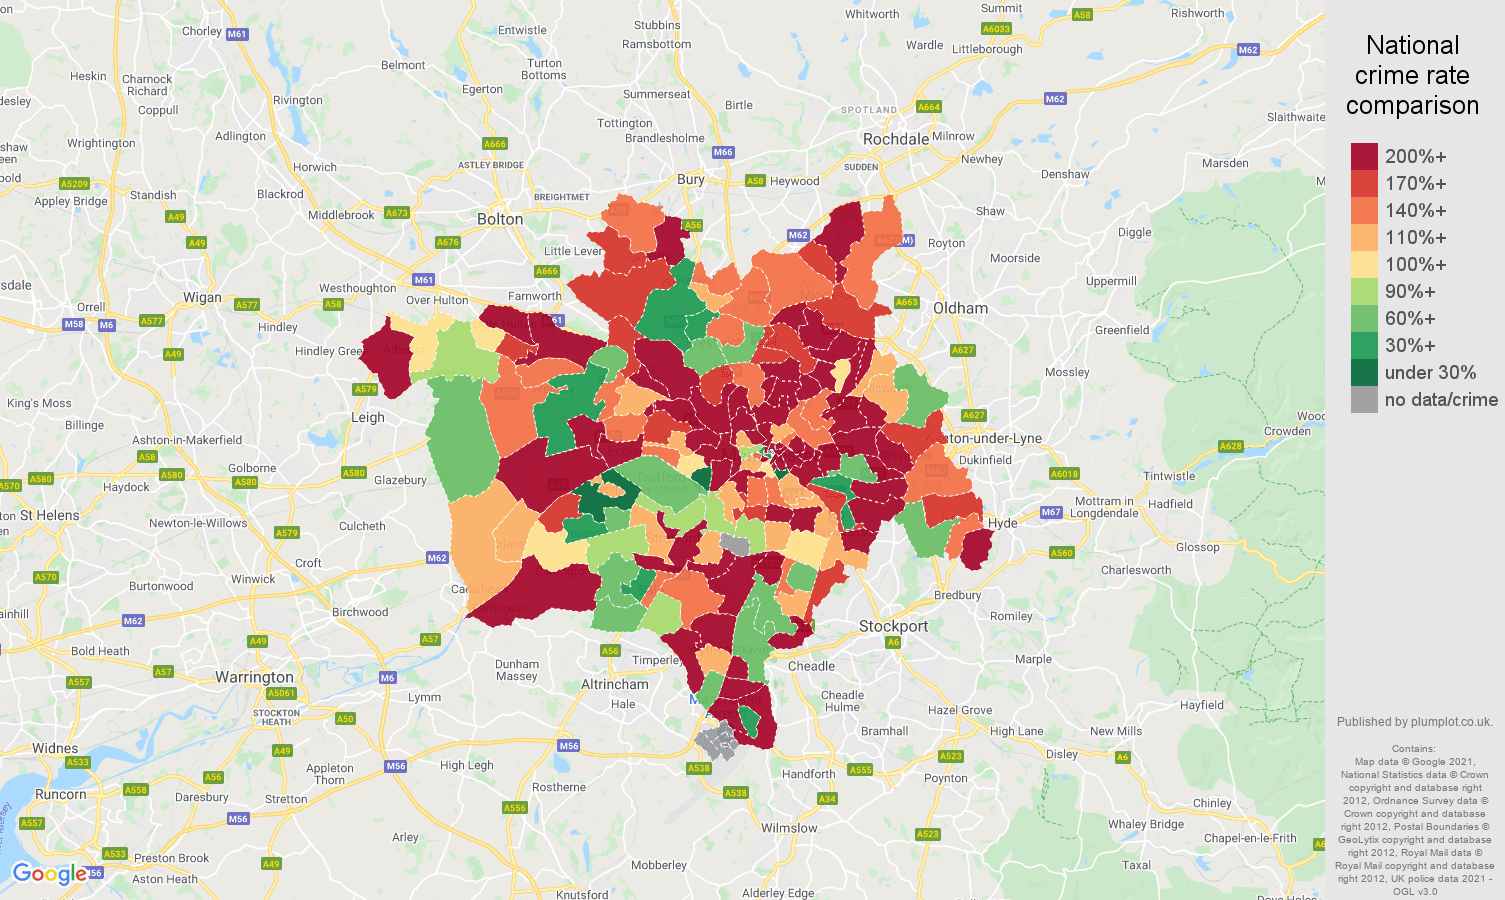 Manchester possession of weapons crime rate comparison map